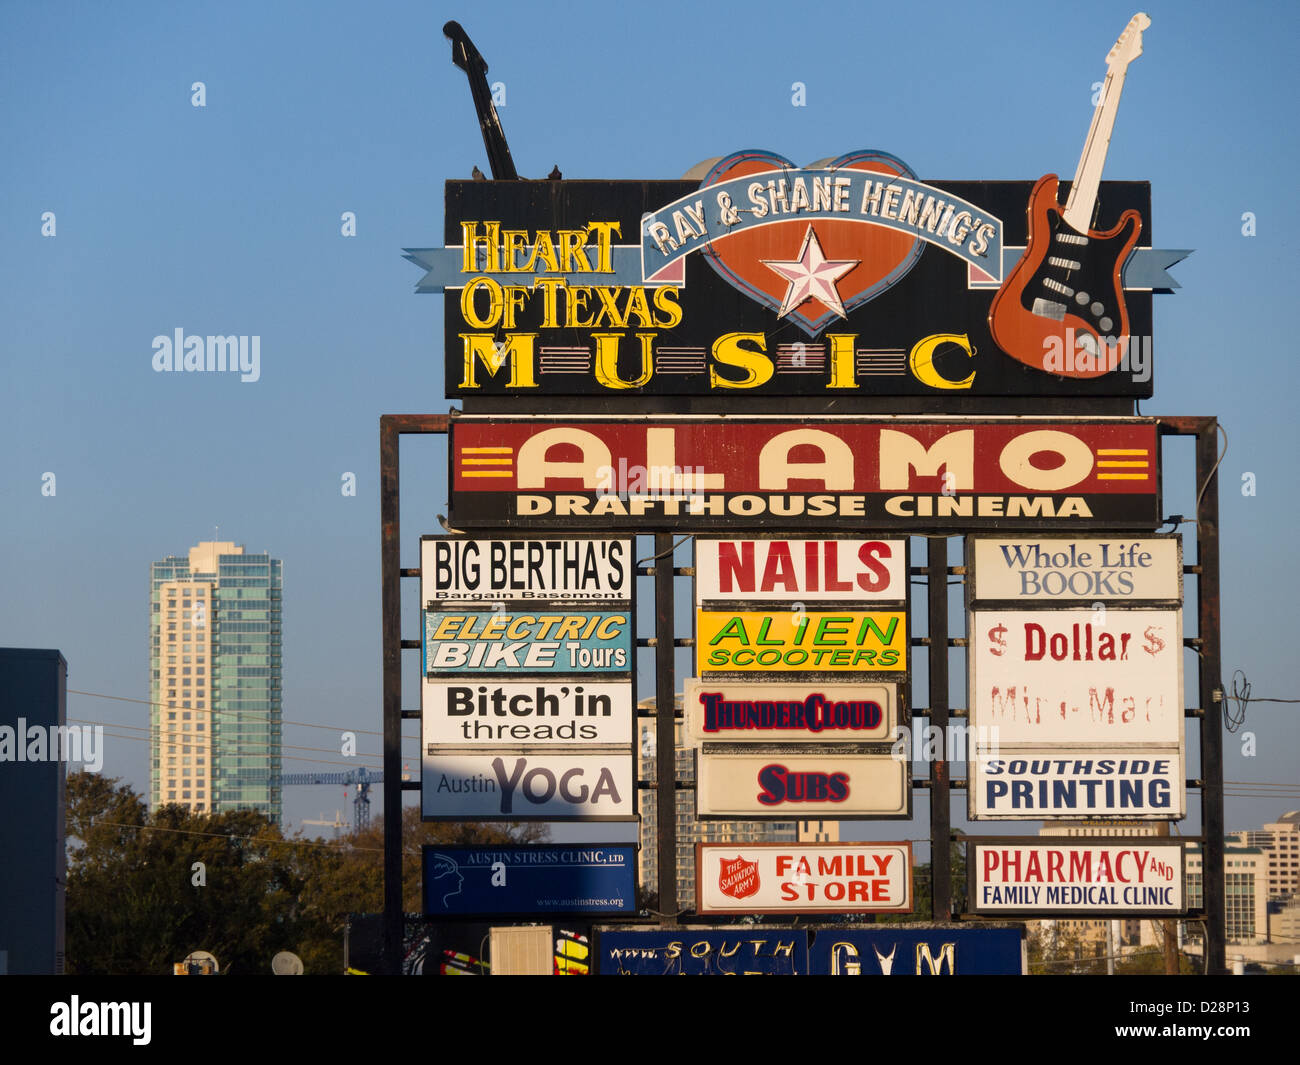 The old Alamo Drafthouse and Heart of Texas Music signs in Austin, Texas on South Lamar Boulevard - Stock Image